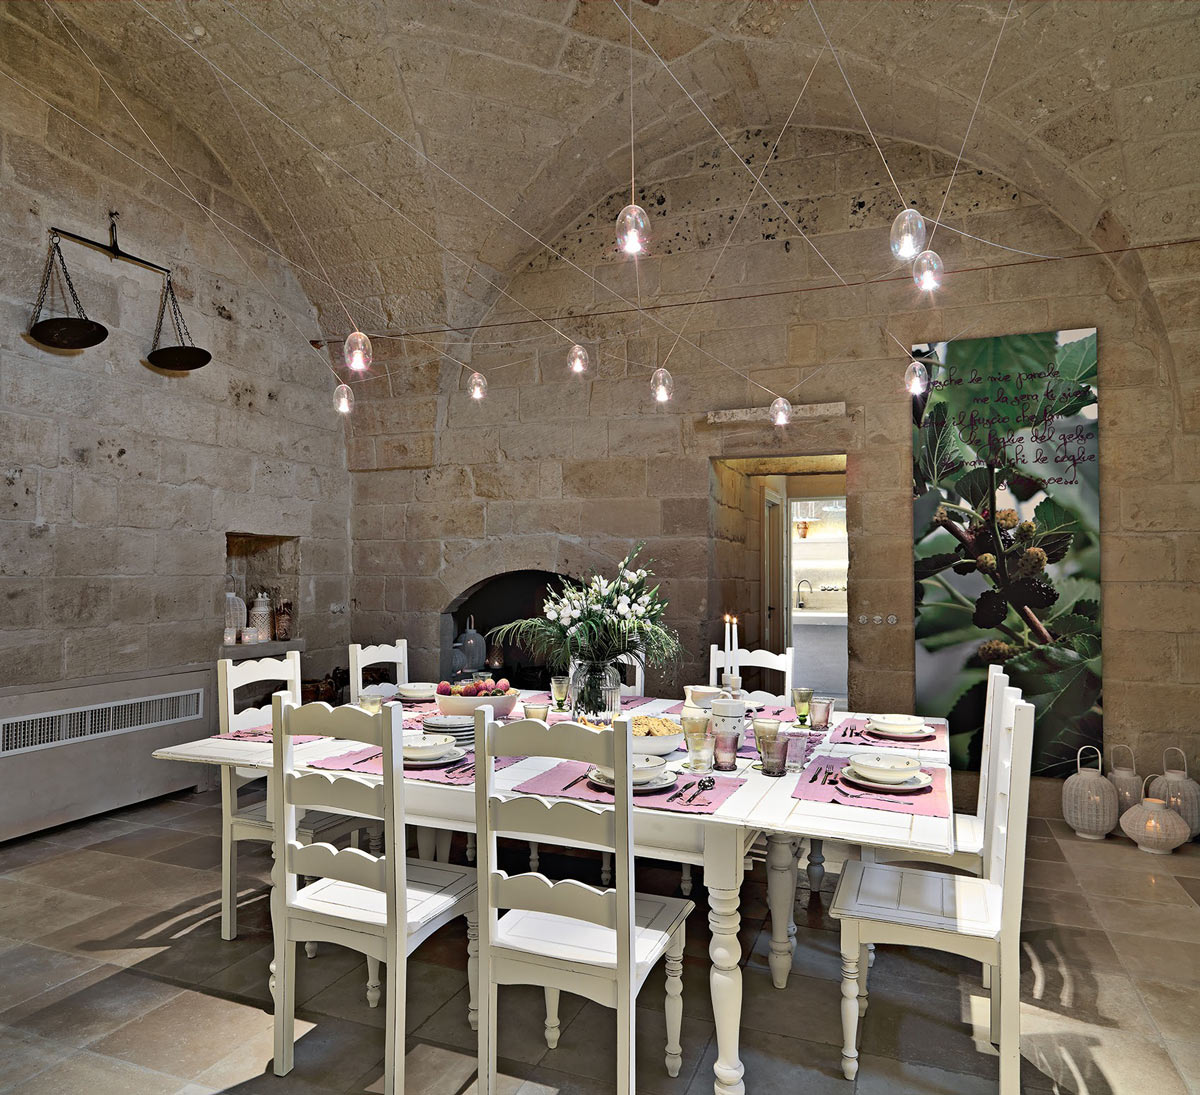 Dining Room, Lighting, Art, Relais Masseria Capasa Hotel in Martano, Italy